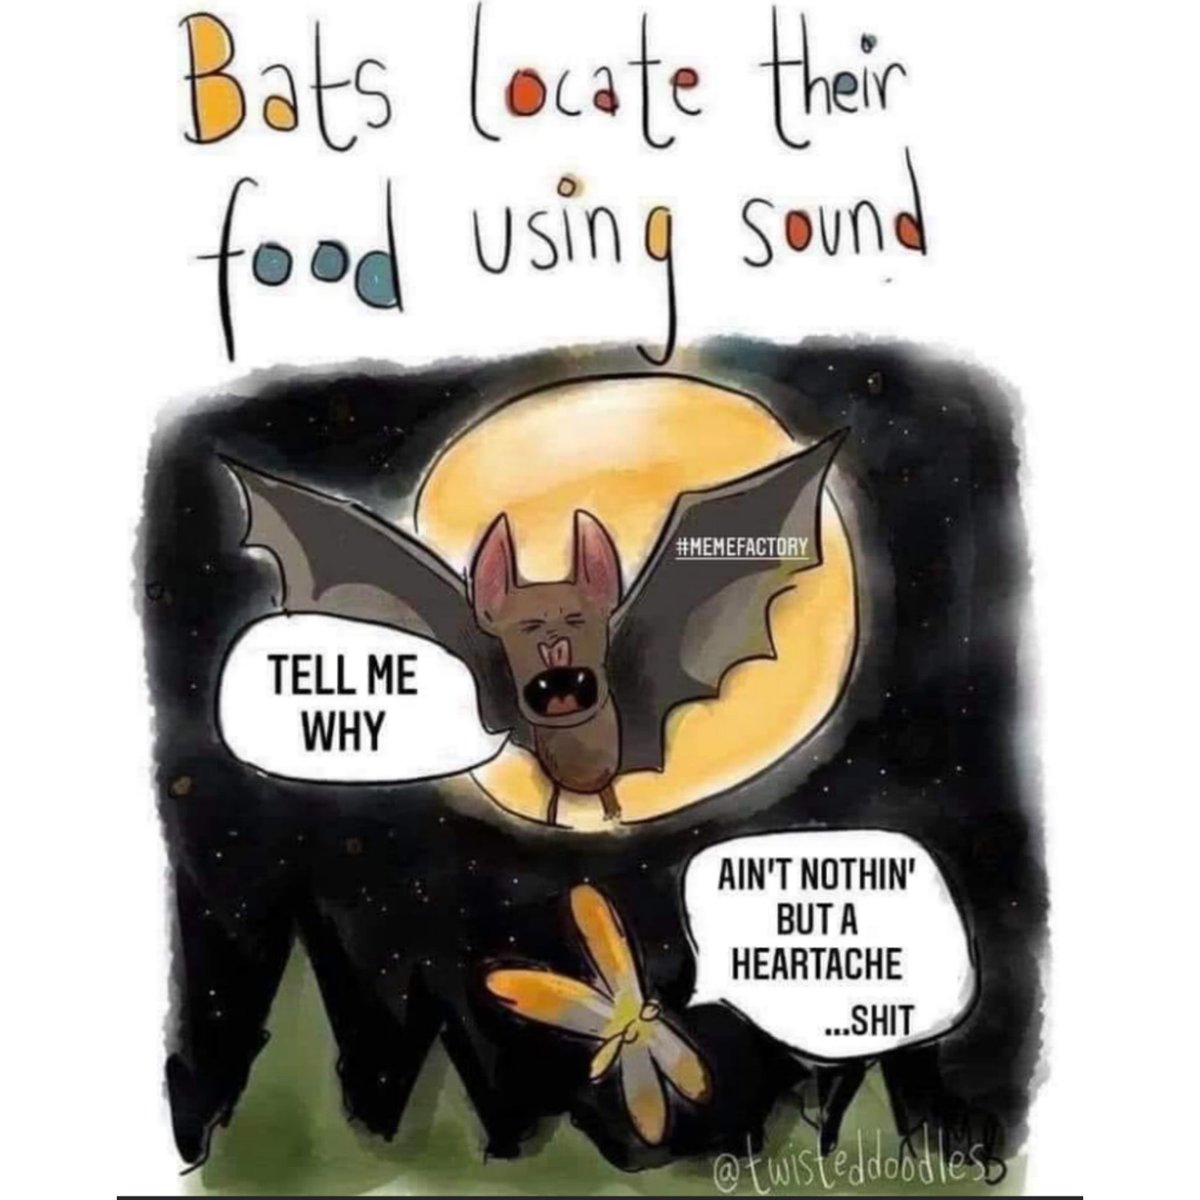 One of my friends in our D&D server shared this image from @twisteddoodles  I LOVE @backstreetboys and straight up burst out laughing at this. #bsb #tellmewhy https://t.co/7IboUTTe31